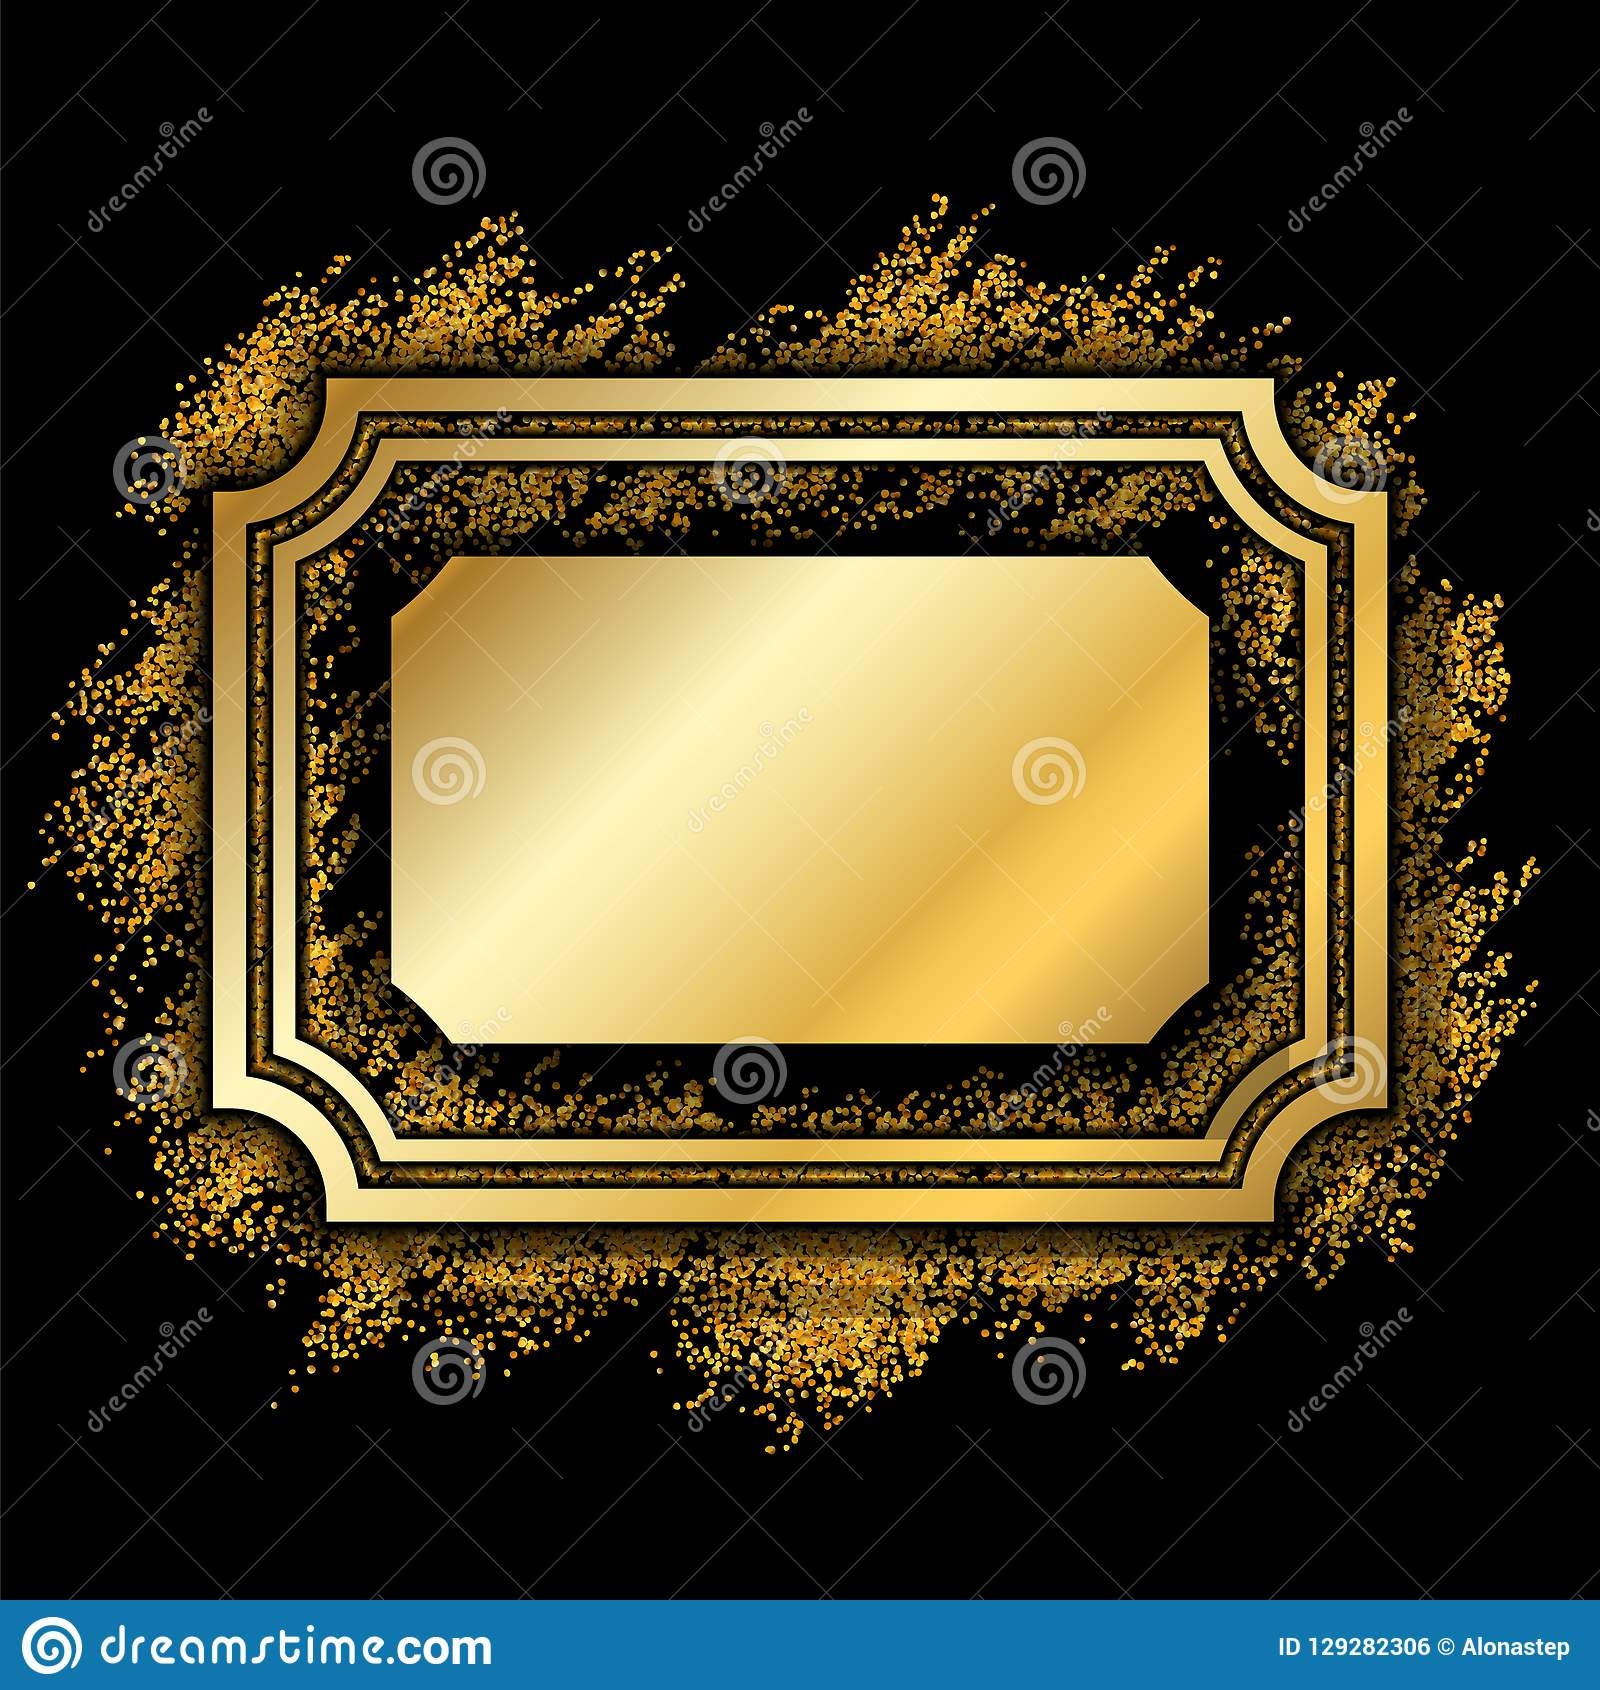 1230939c0a8 Royalty-Free Vector. Gold frame. Beautiful golden glitter design. Vintage  style decorative border